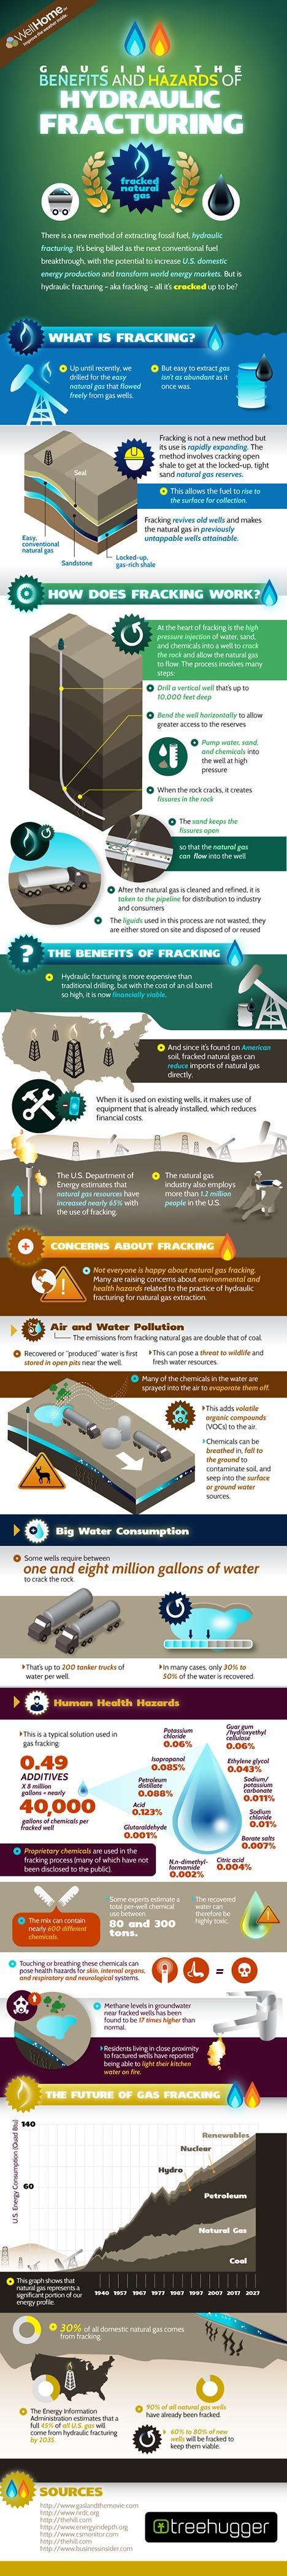 In case you're just getting up to speed on the loudly contentious debate about fracking then we've got an infographic for you.